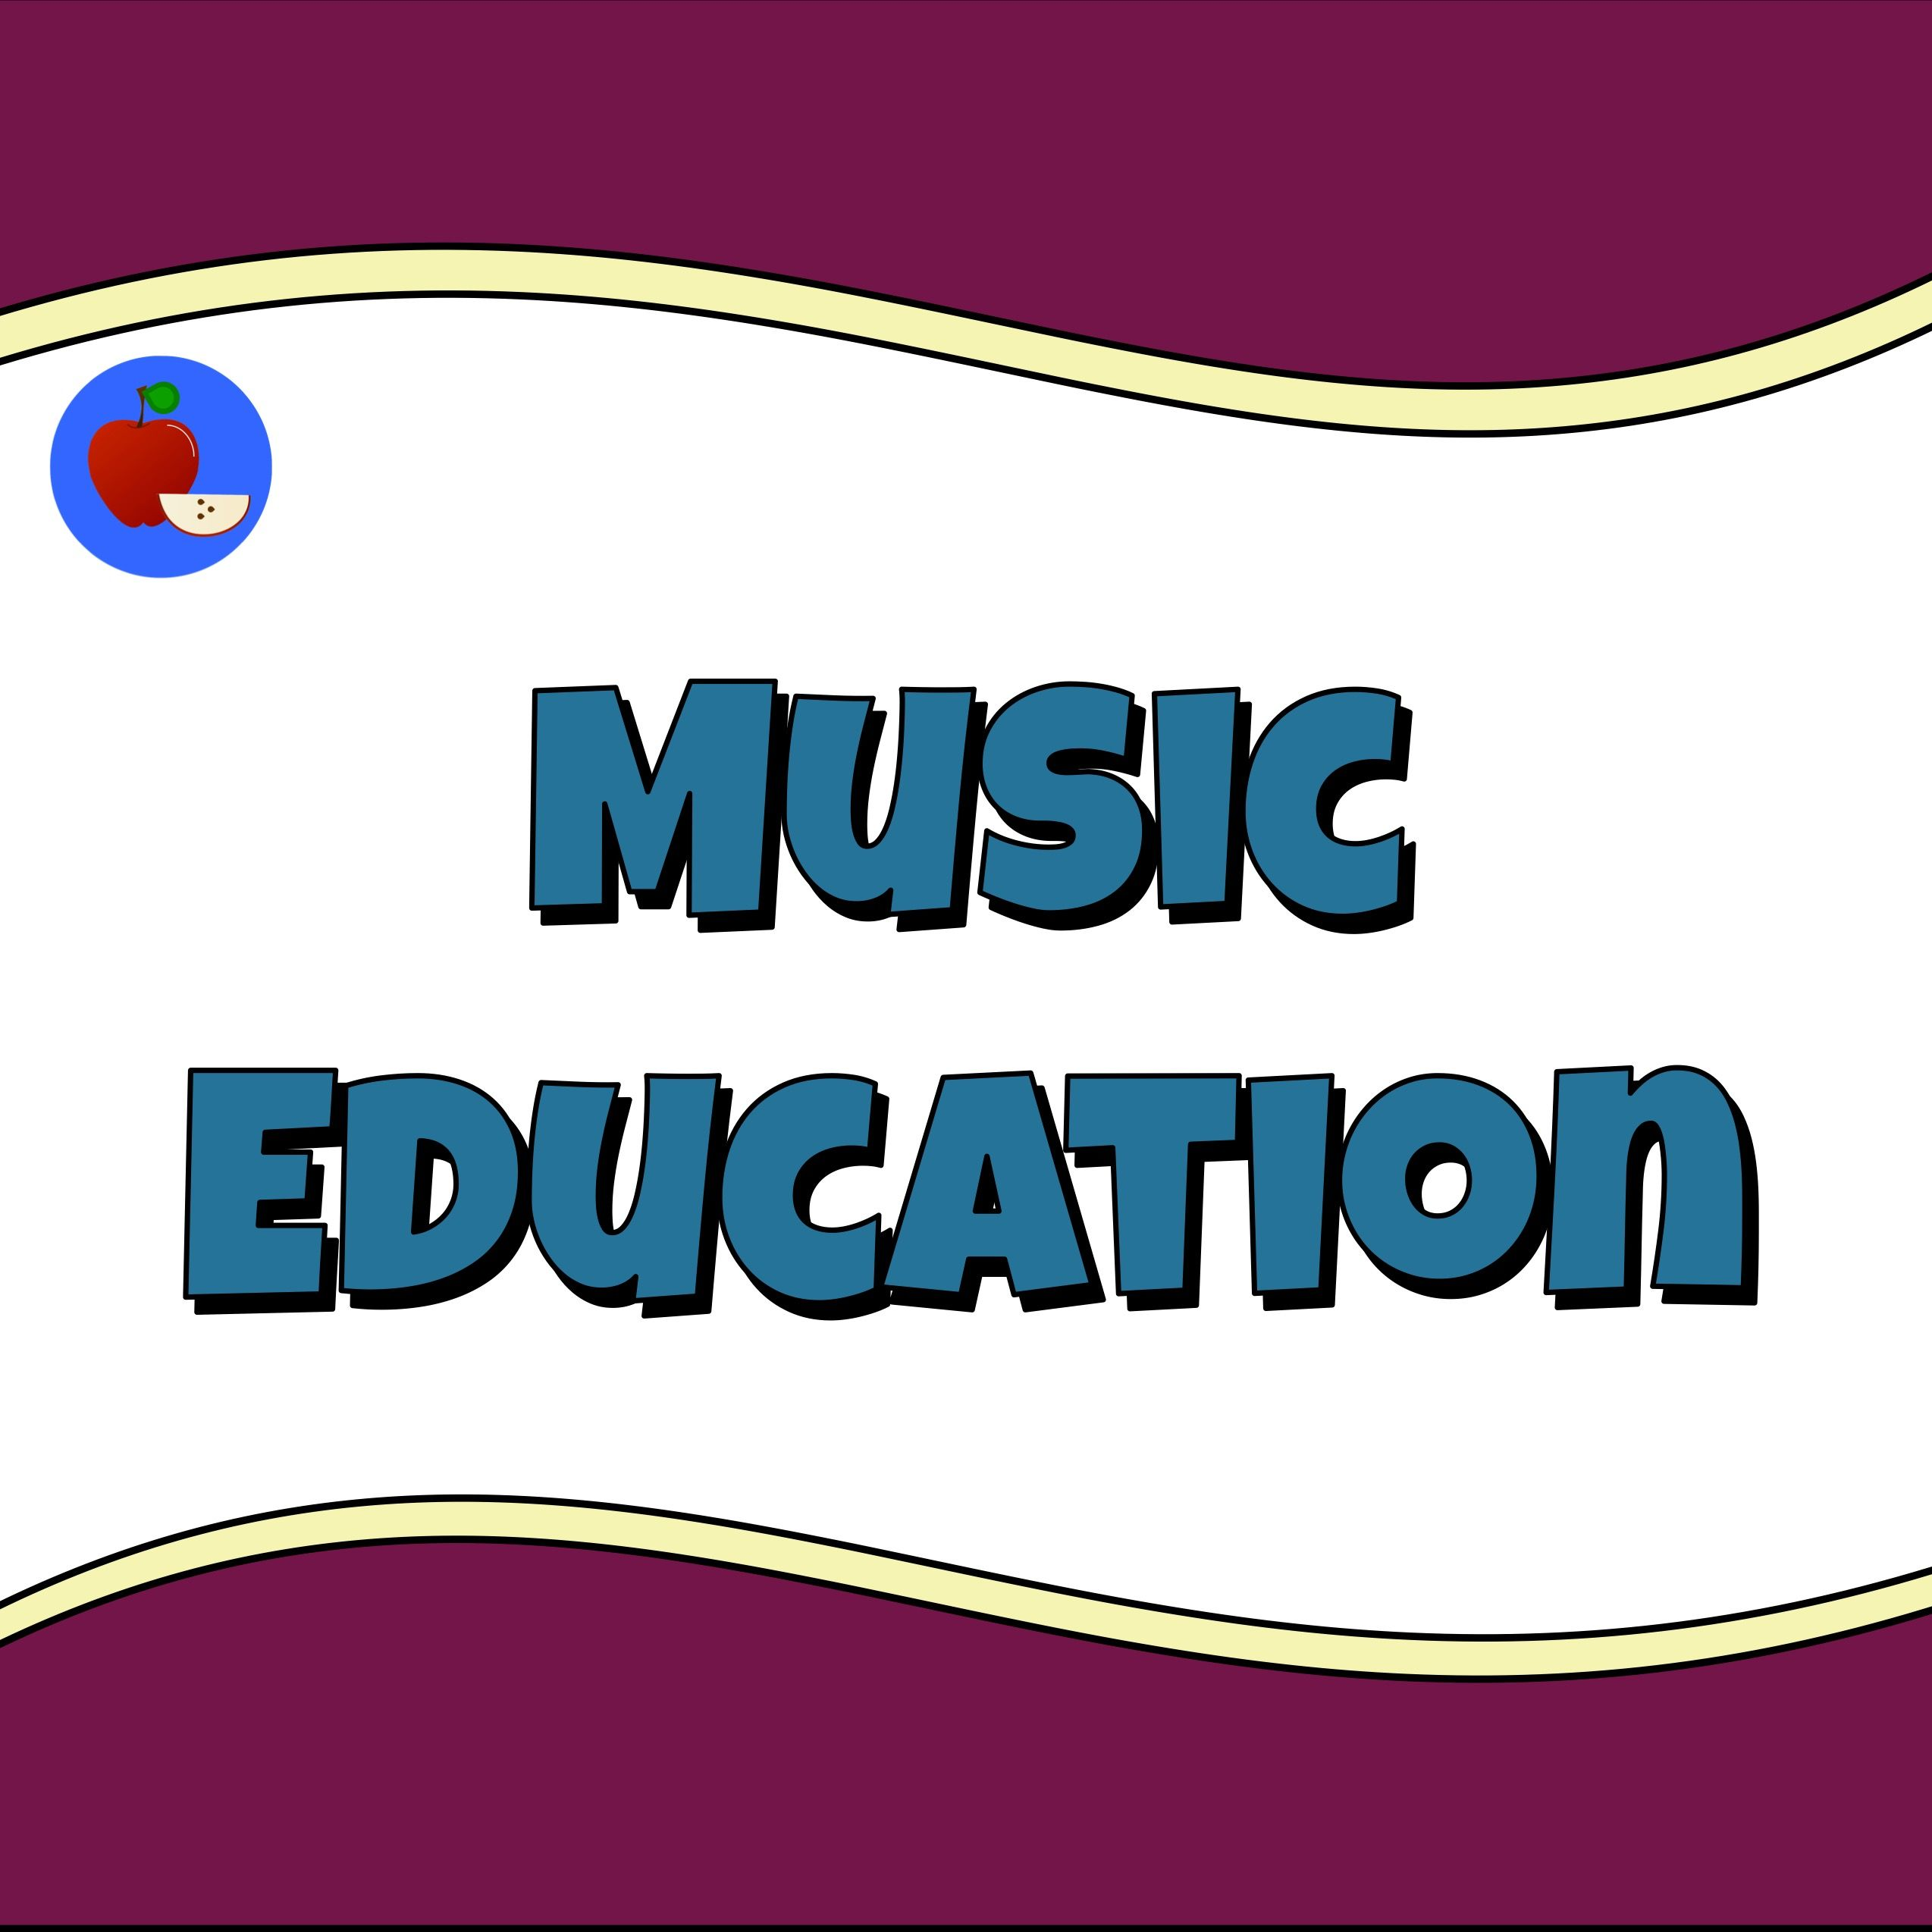 Music Education Image By Terbet Lane Learning Resources On